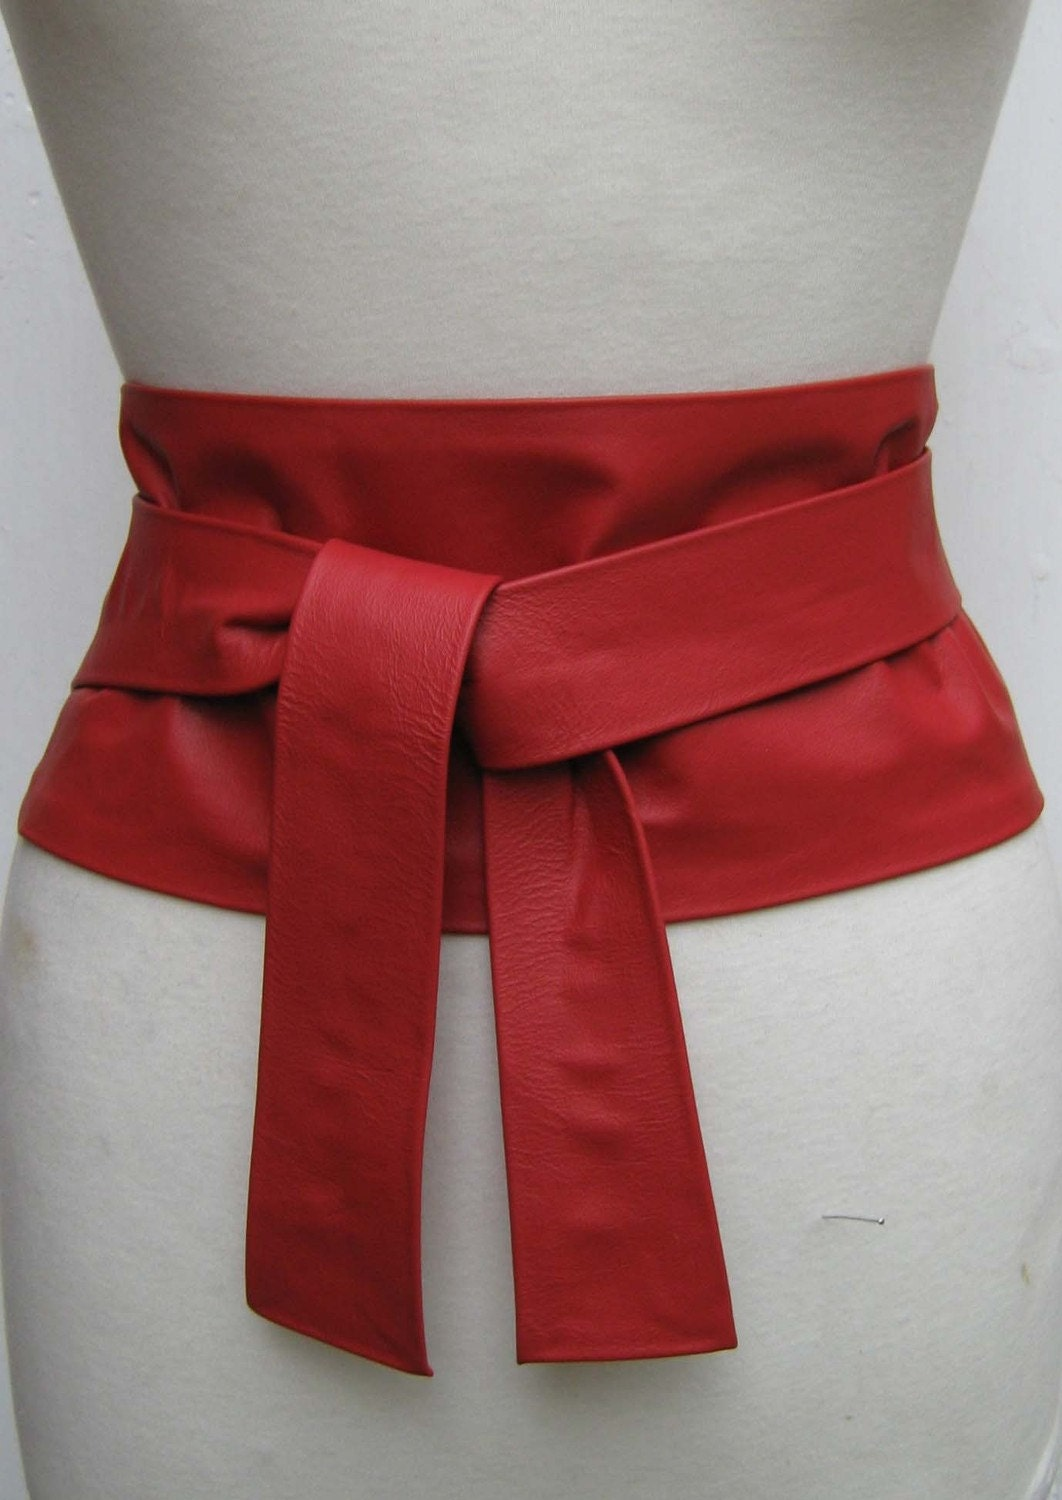 items similar to scarlet wide leather obi wrap belt on